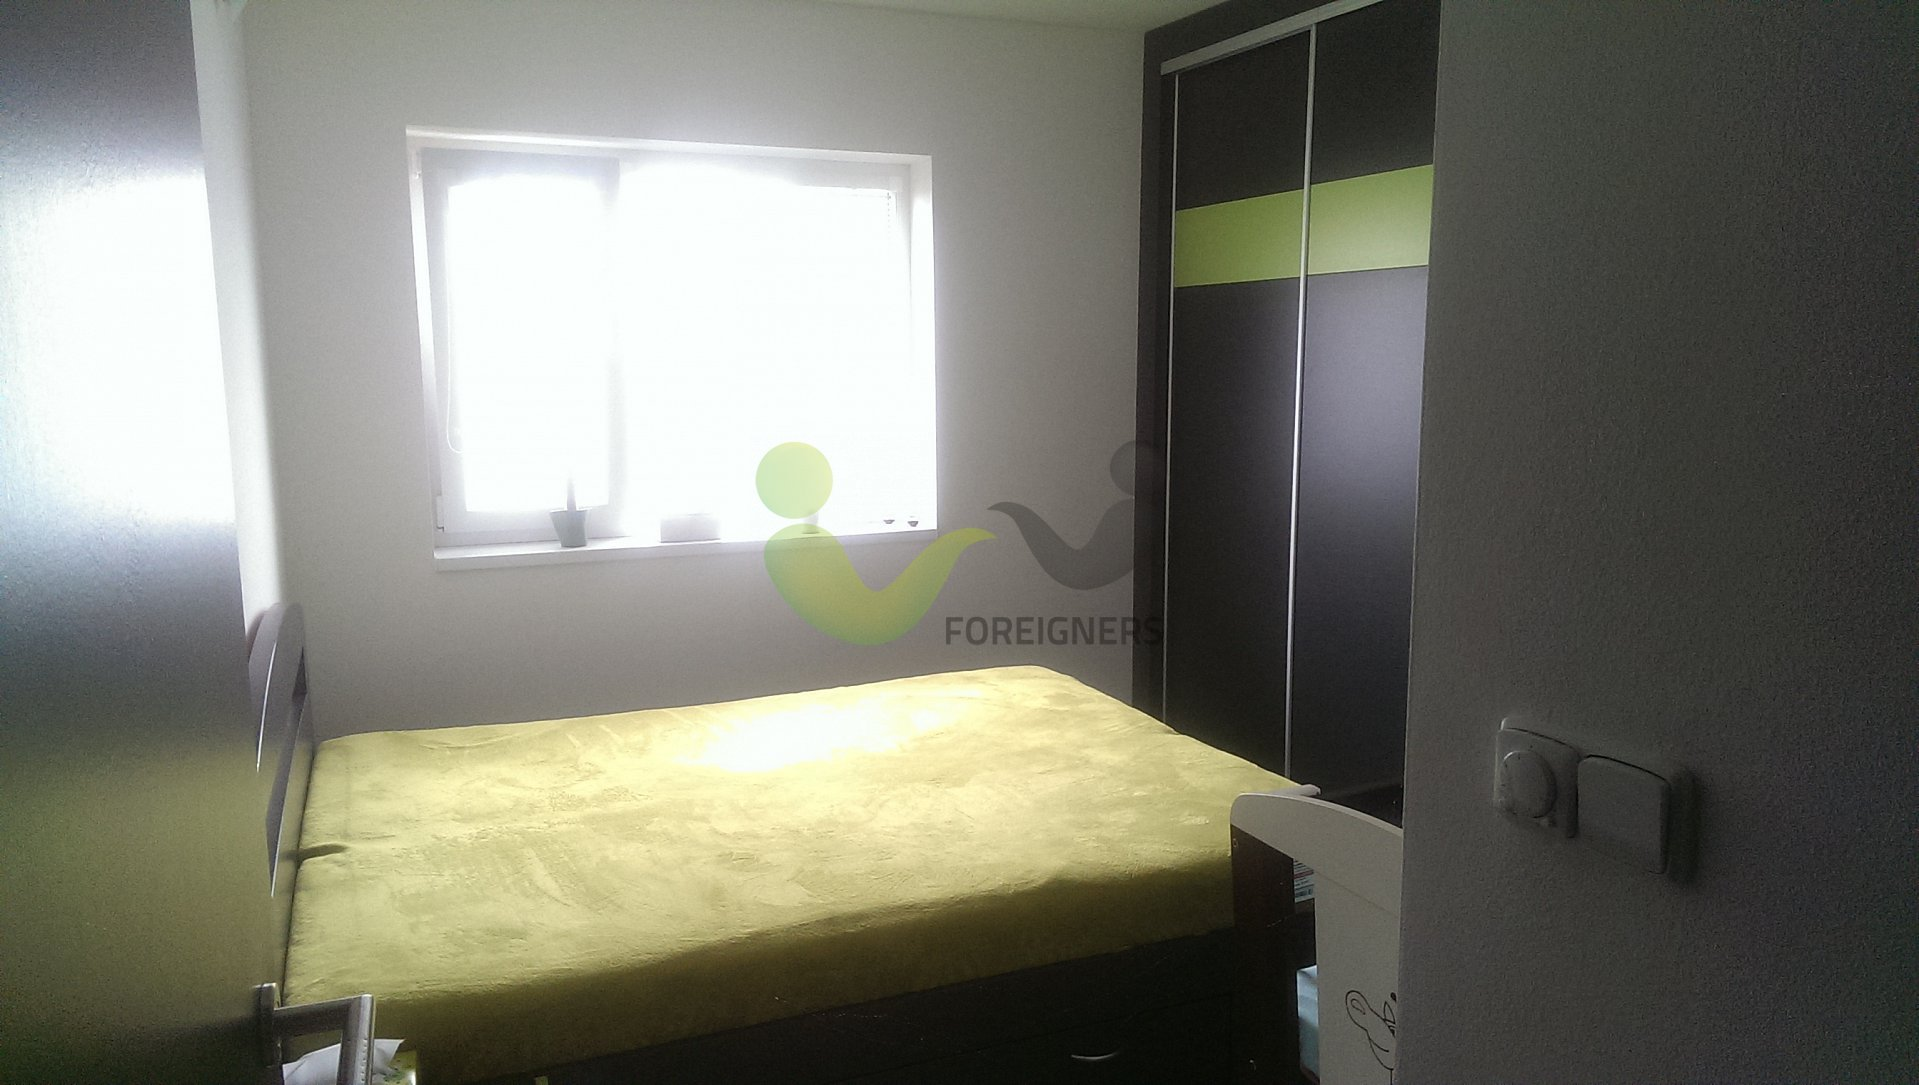 1 bedroom 2 kk apartment for rent in brno - 1 or 2 bedroom apartments for rent ...